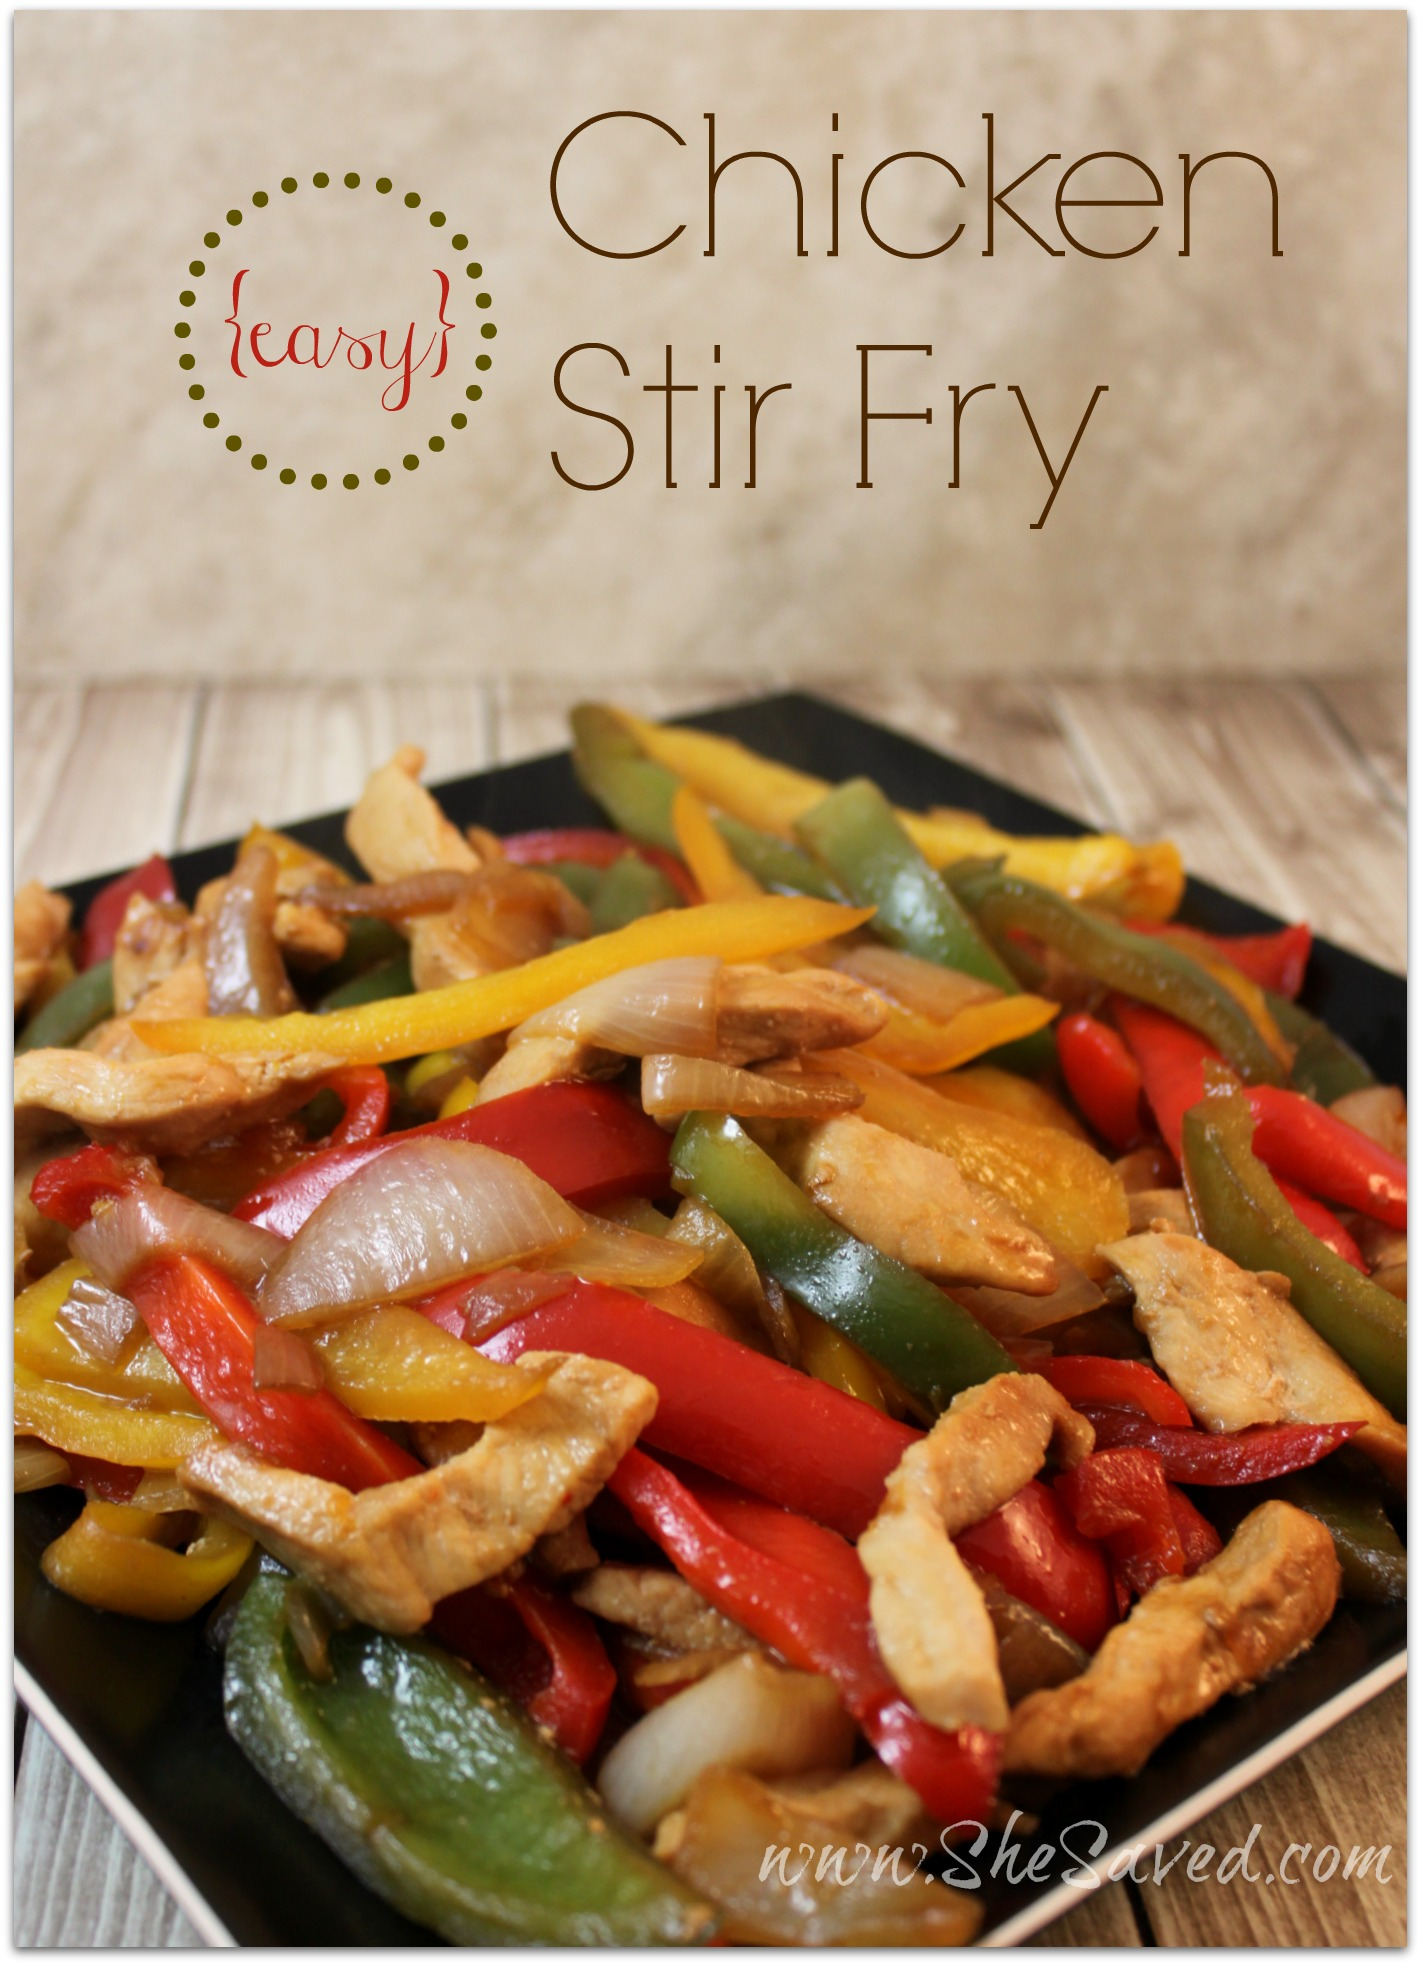 Easy Chicken Stir Fry Recipe Shesaved